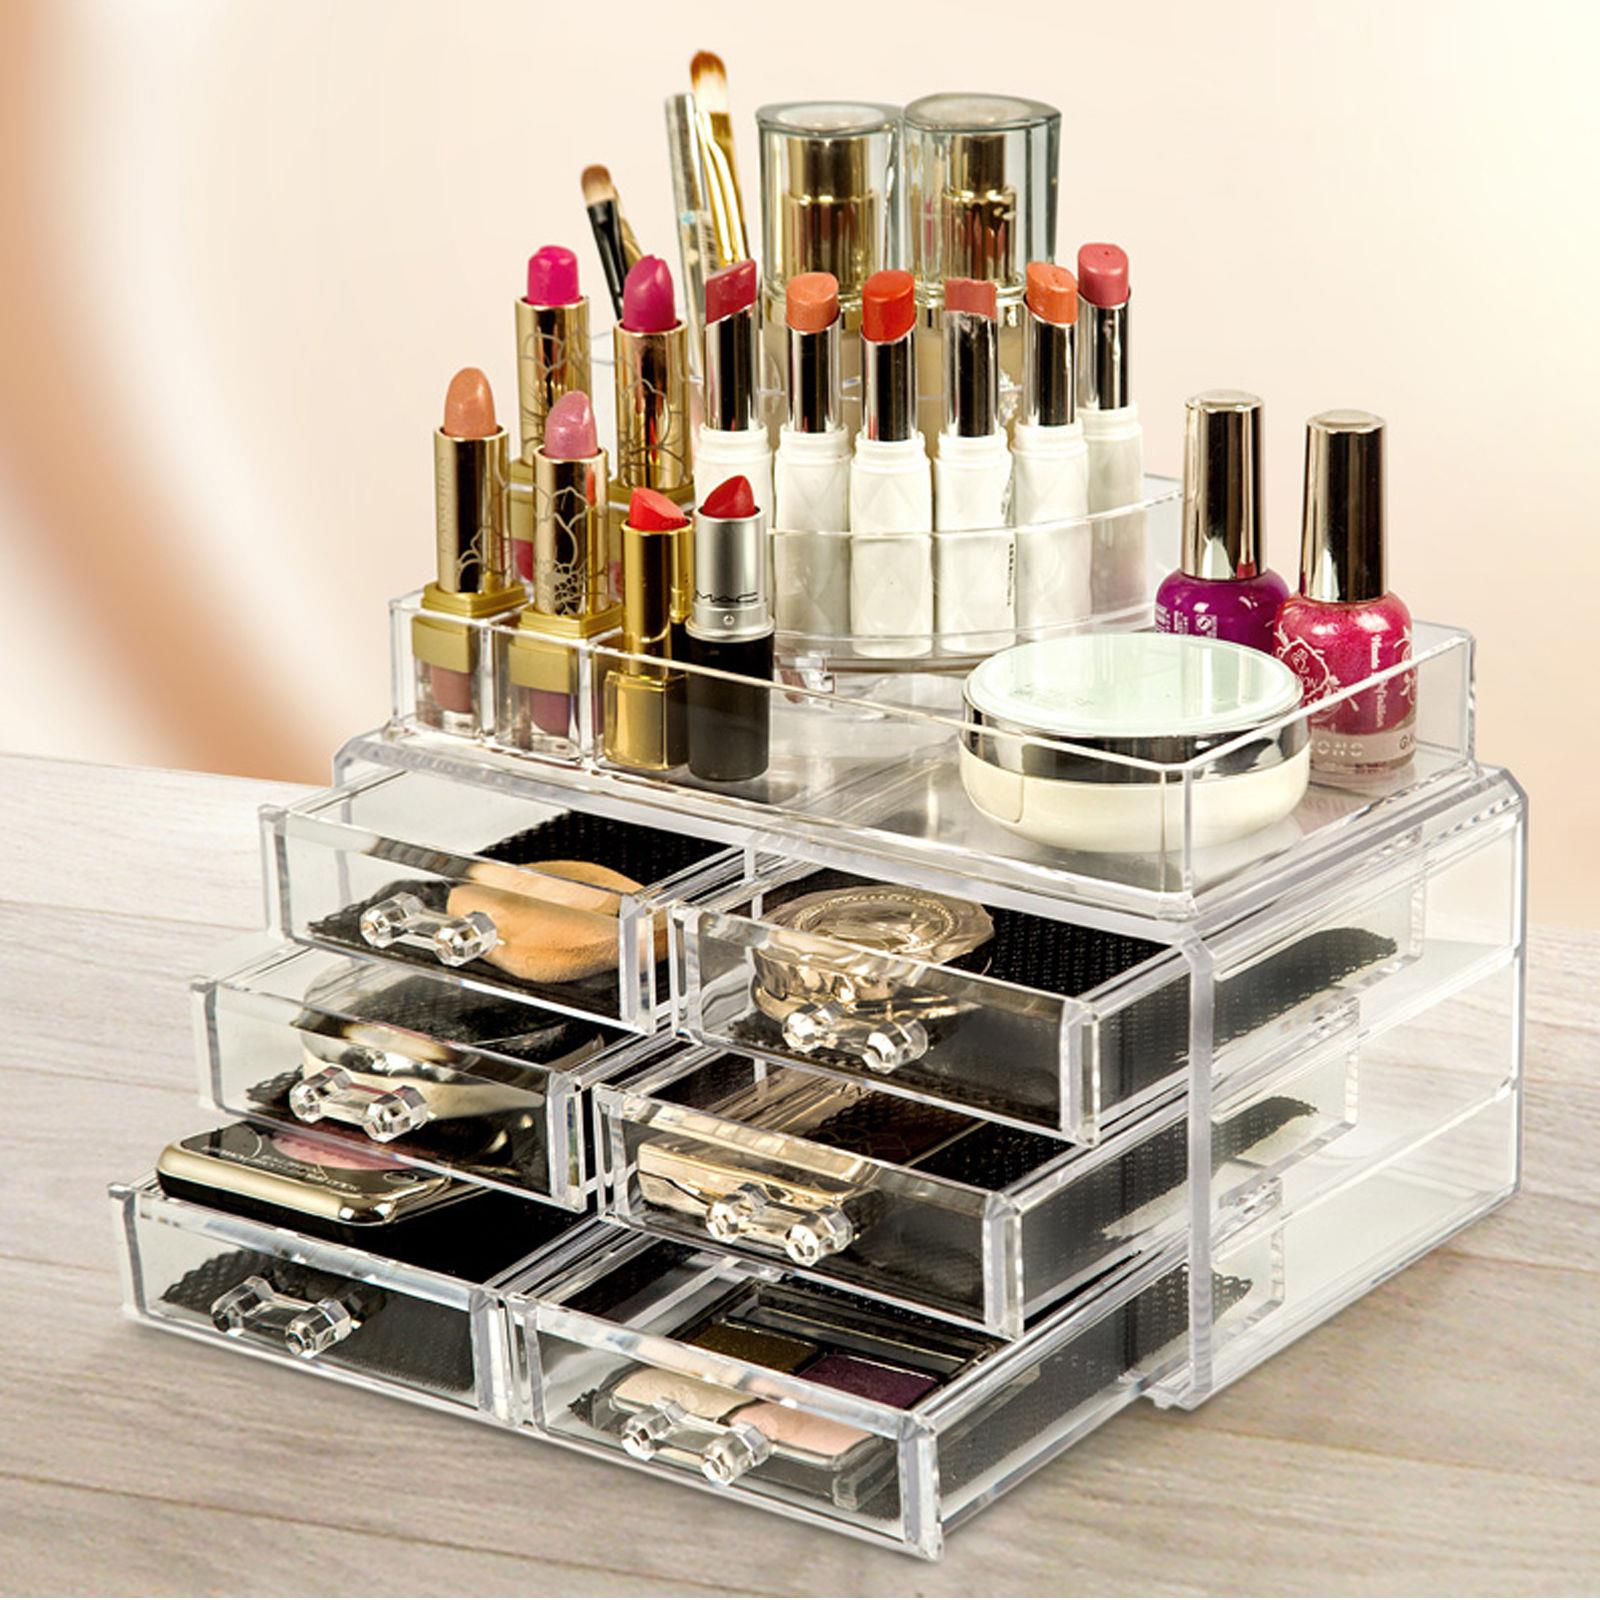 Details about 6 Drawer Clear Acrylic Cosmetic Organizer Makeup Case Jewelry  Storage Holder Box